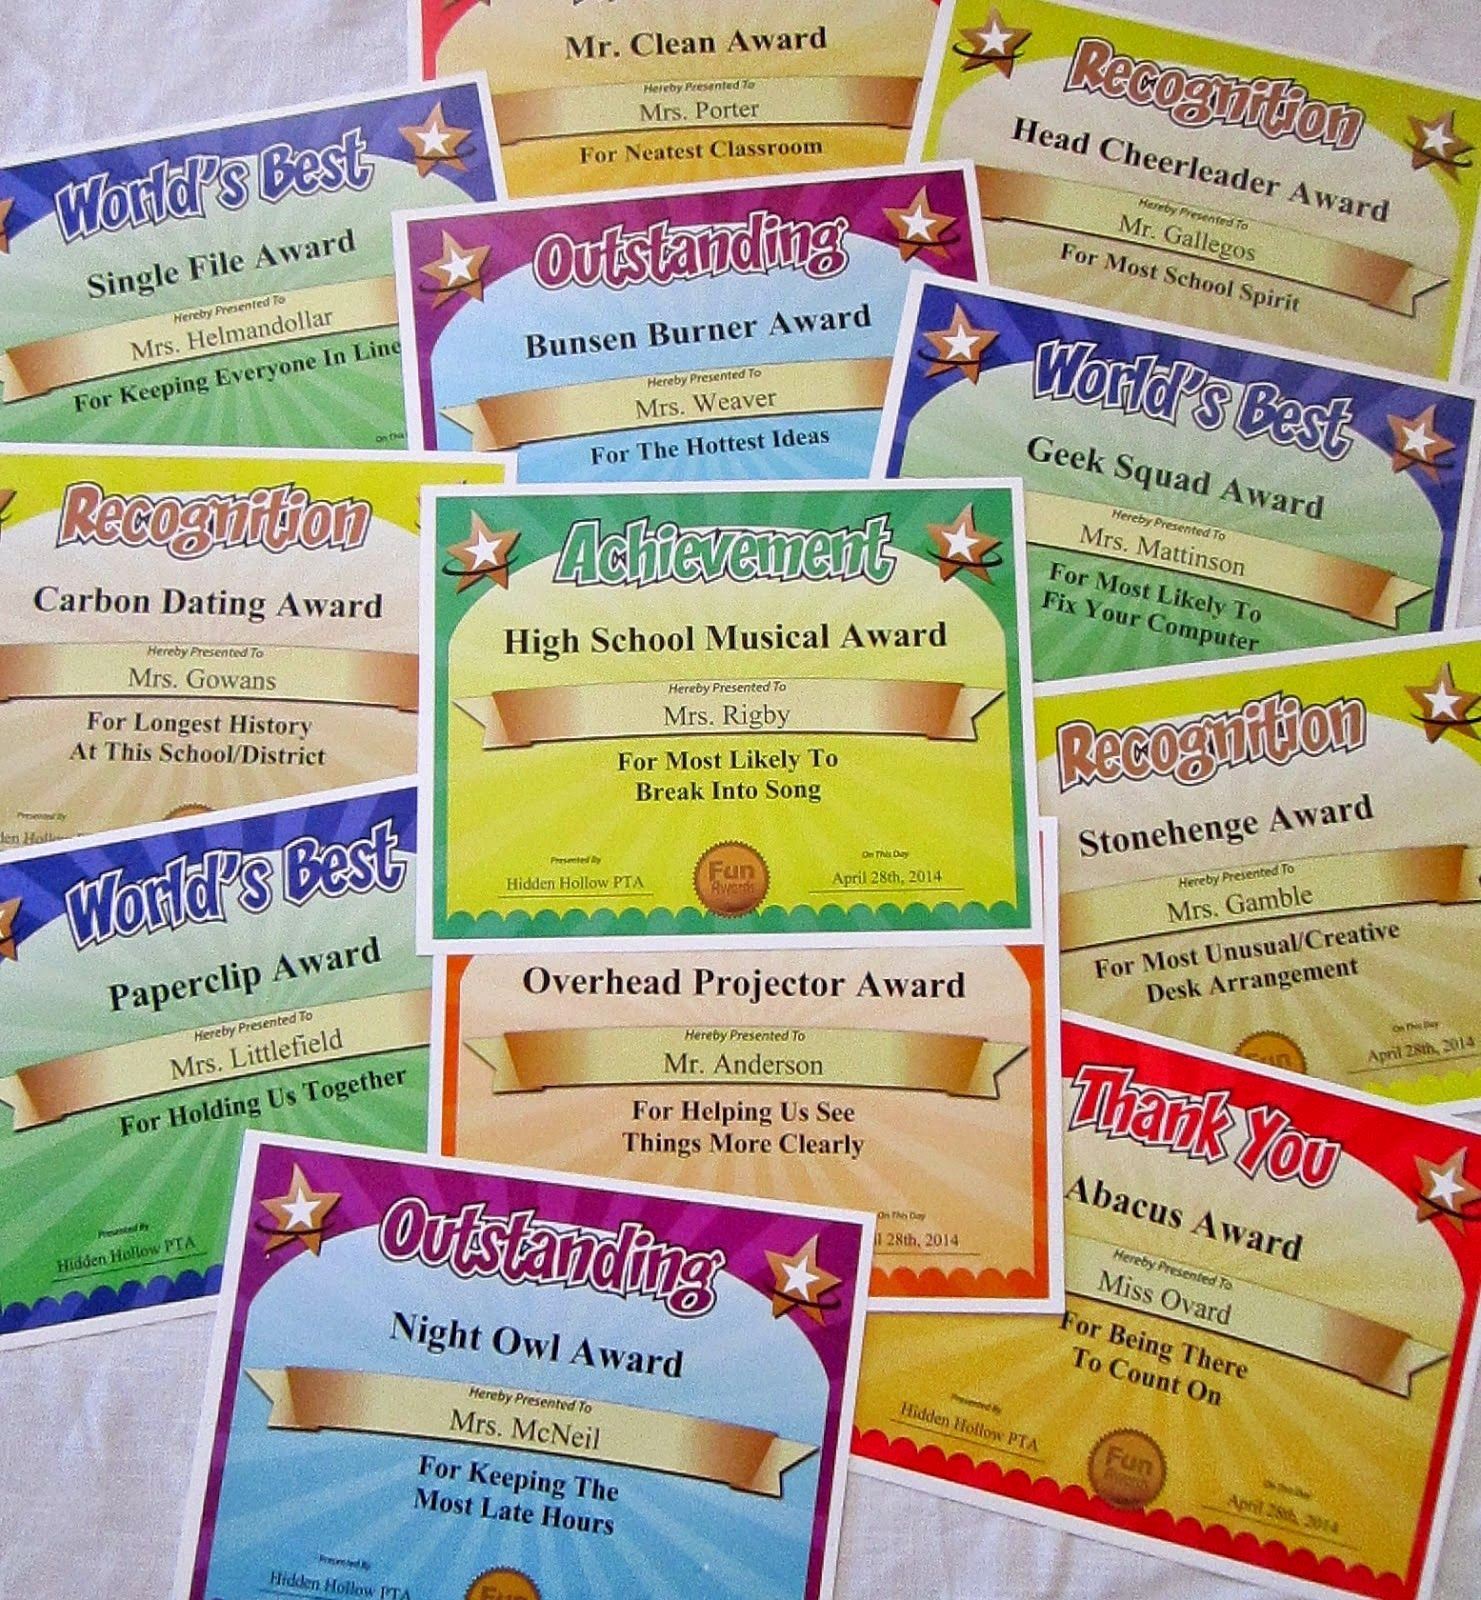 Award Titles for Sports Awesome From 101 Funny Teacher Awards by Larry Weaver